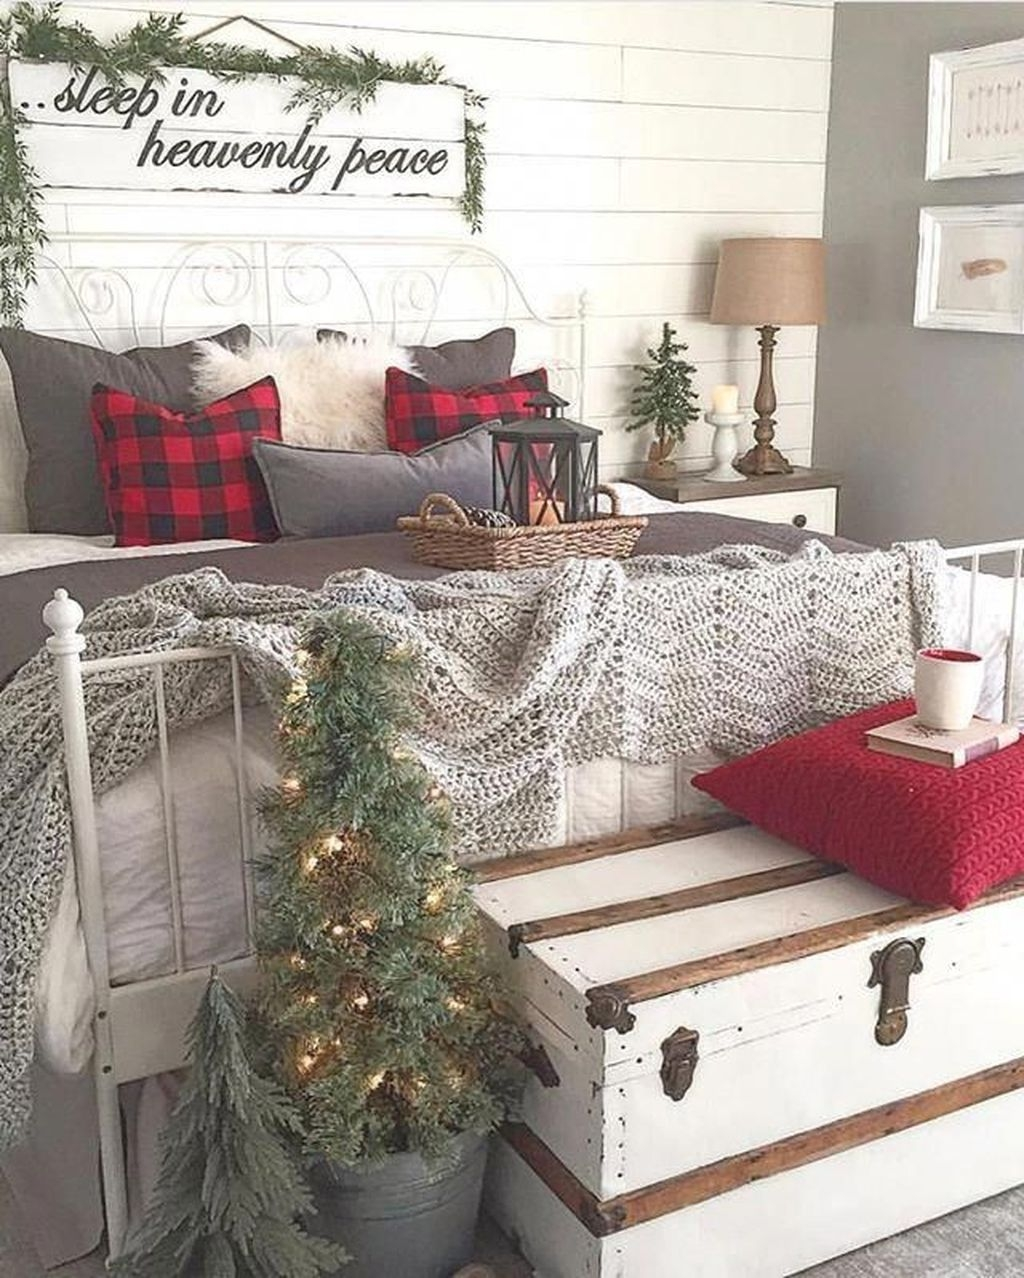 Minimalist Farmhouse Christmas Bedroom Decoration Ideas19